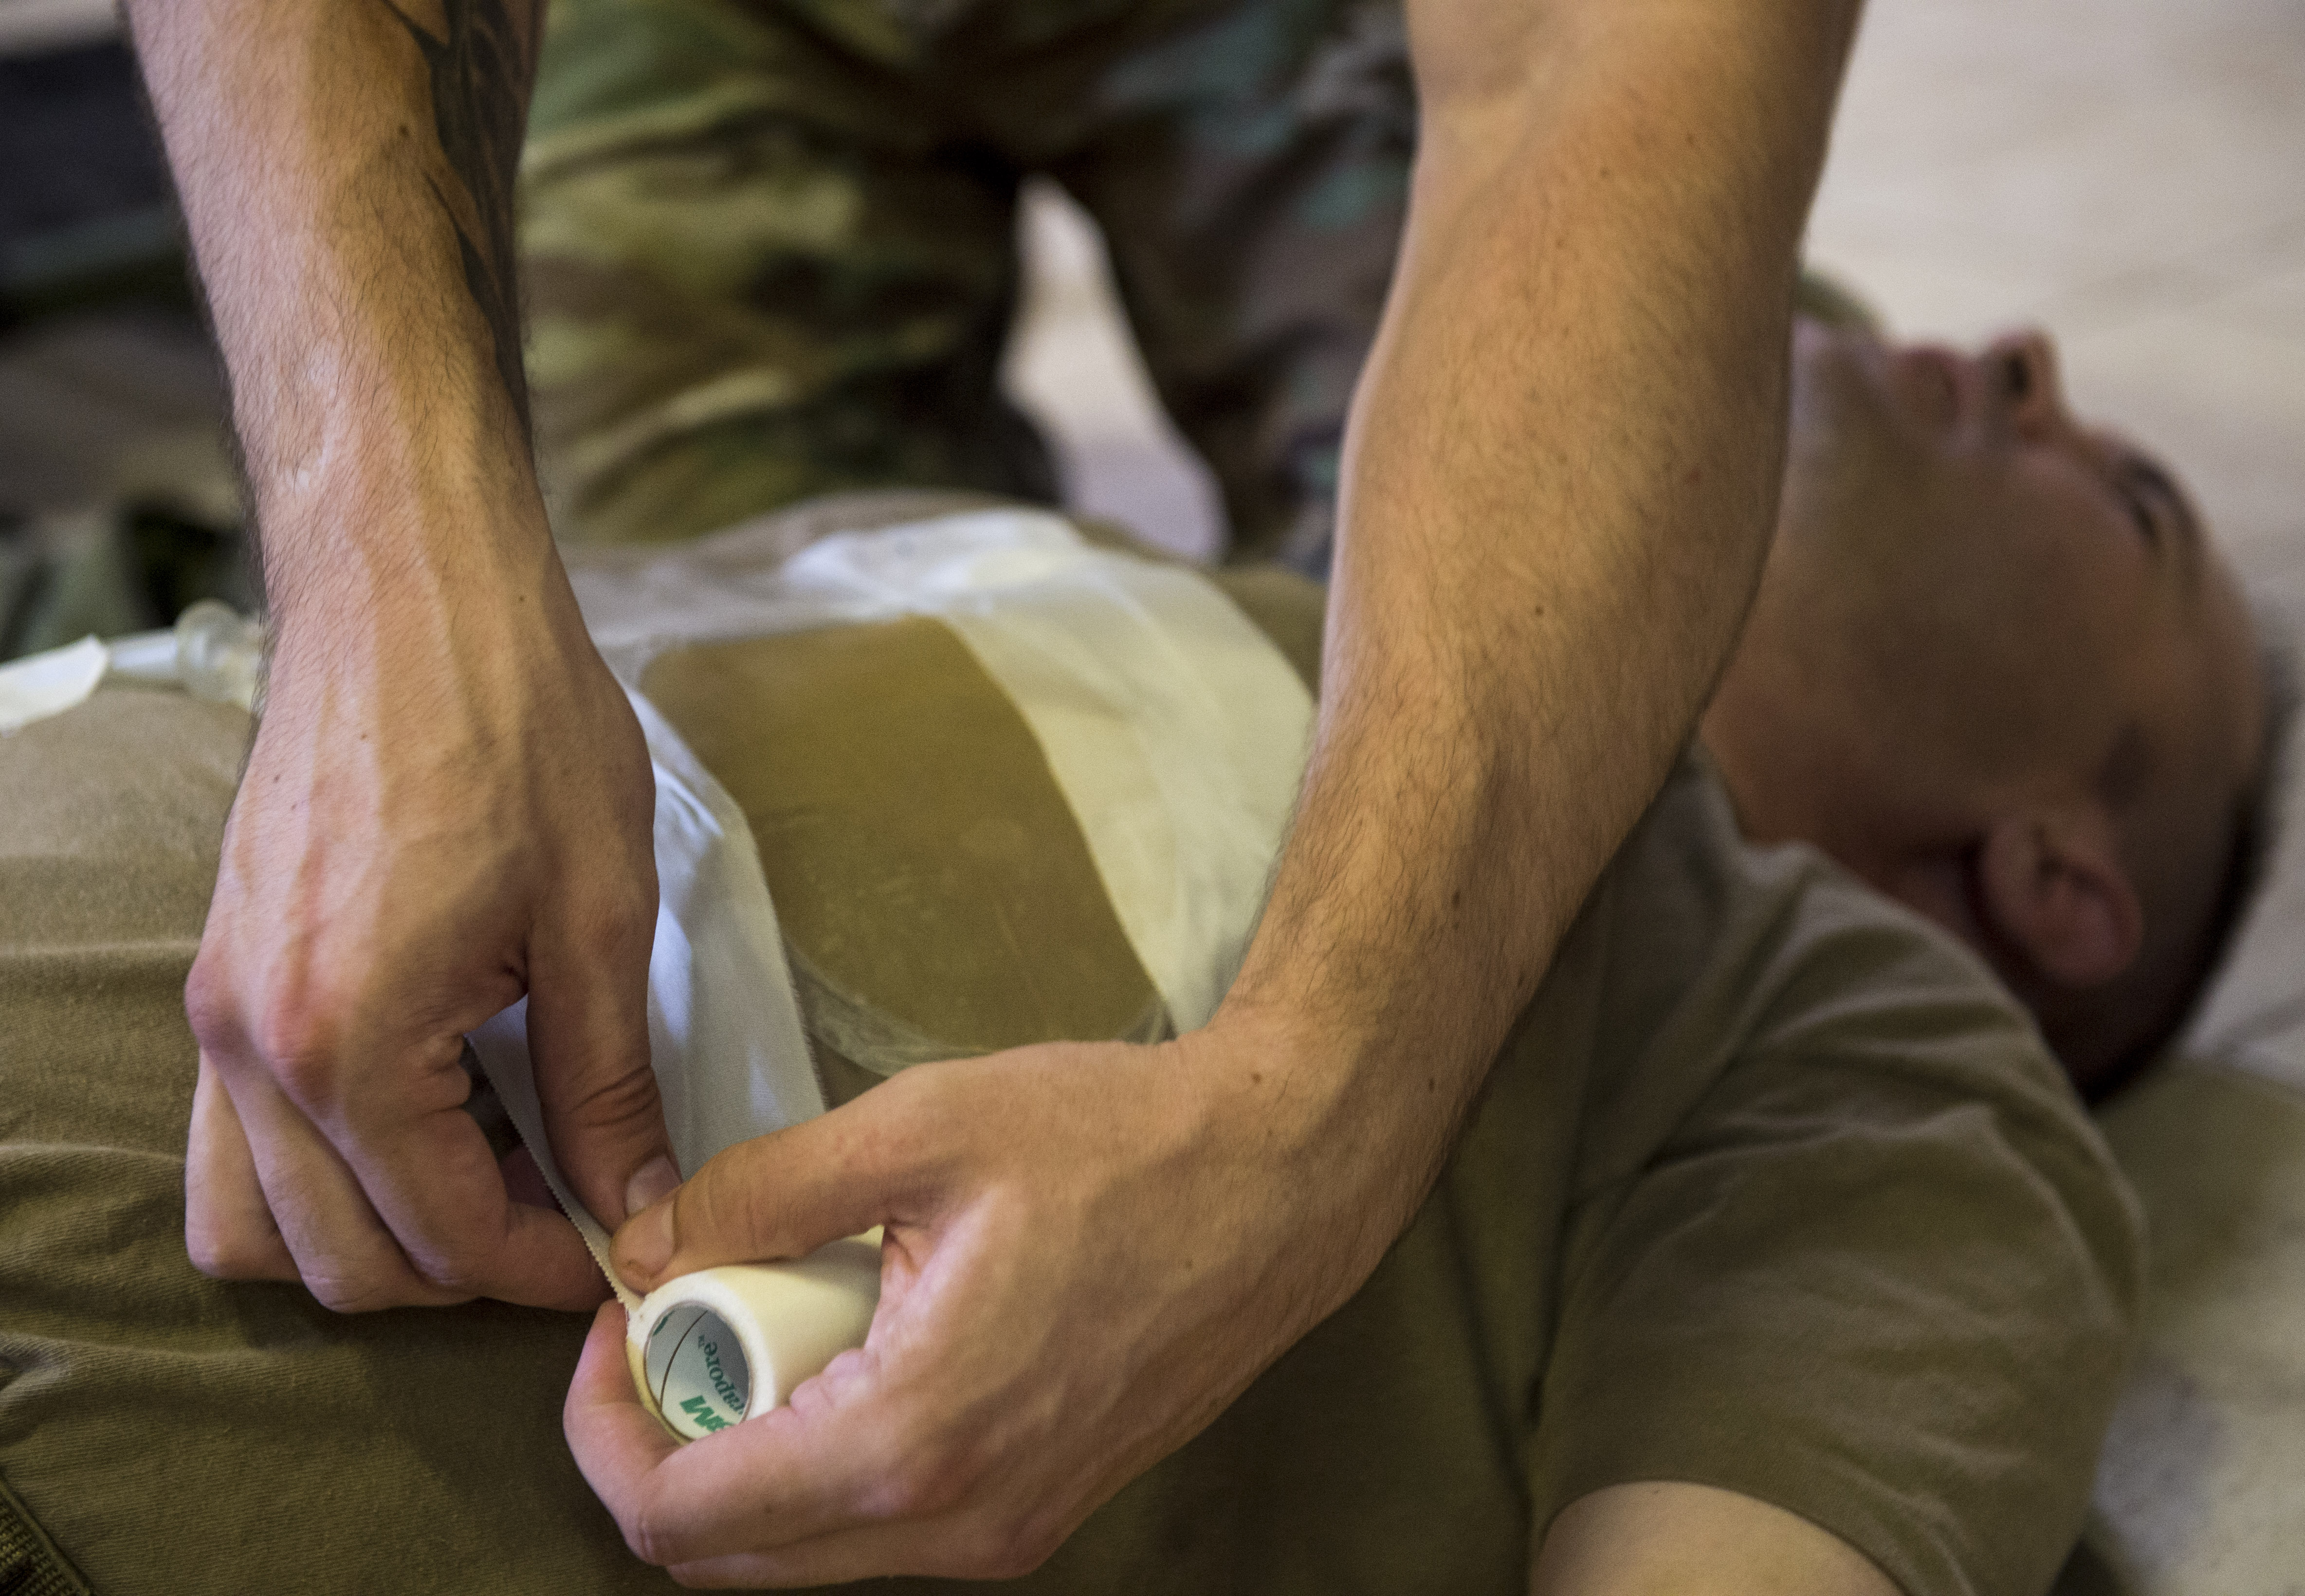 U.S. Air Force Airman 1st Class Antonio Espinoza, assigned to the Combined Joint Task Force - Horn of Africa Communications Directorate, seals the edges of a simulated open chest wound during the final assessment of a U.S. Army Combat Lifesaver Course held at Camp Lemonnier, Djibouti, Dec. 1, 2017. The five-day course focused on teaching students how to administer lifesaving tactical medical care to wounded service members on the battlefield. (U.S. Air Force photo by Staff Sgt. Timothy Moore)